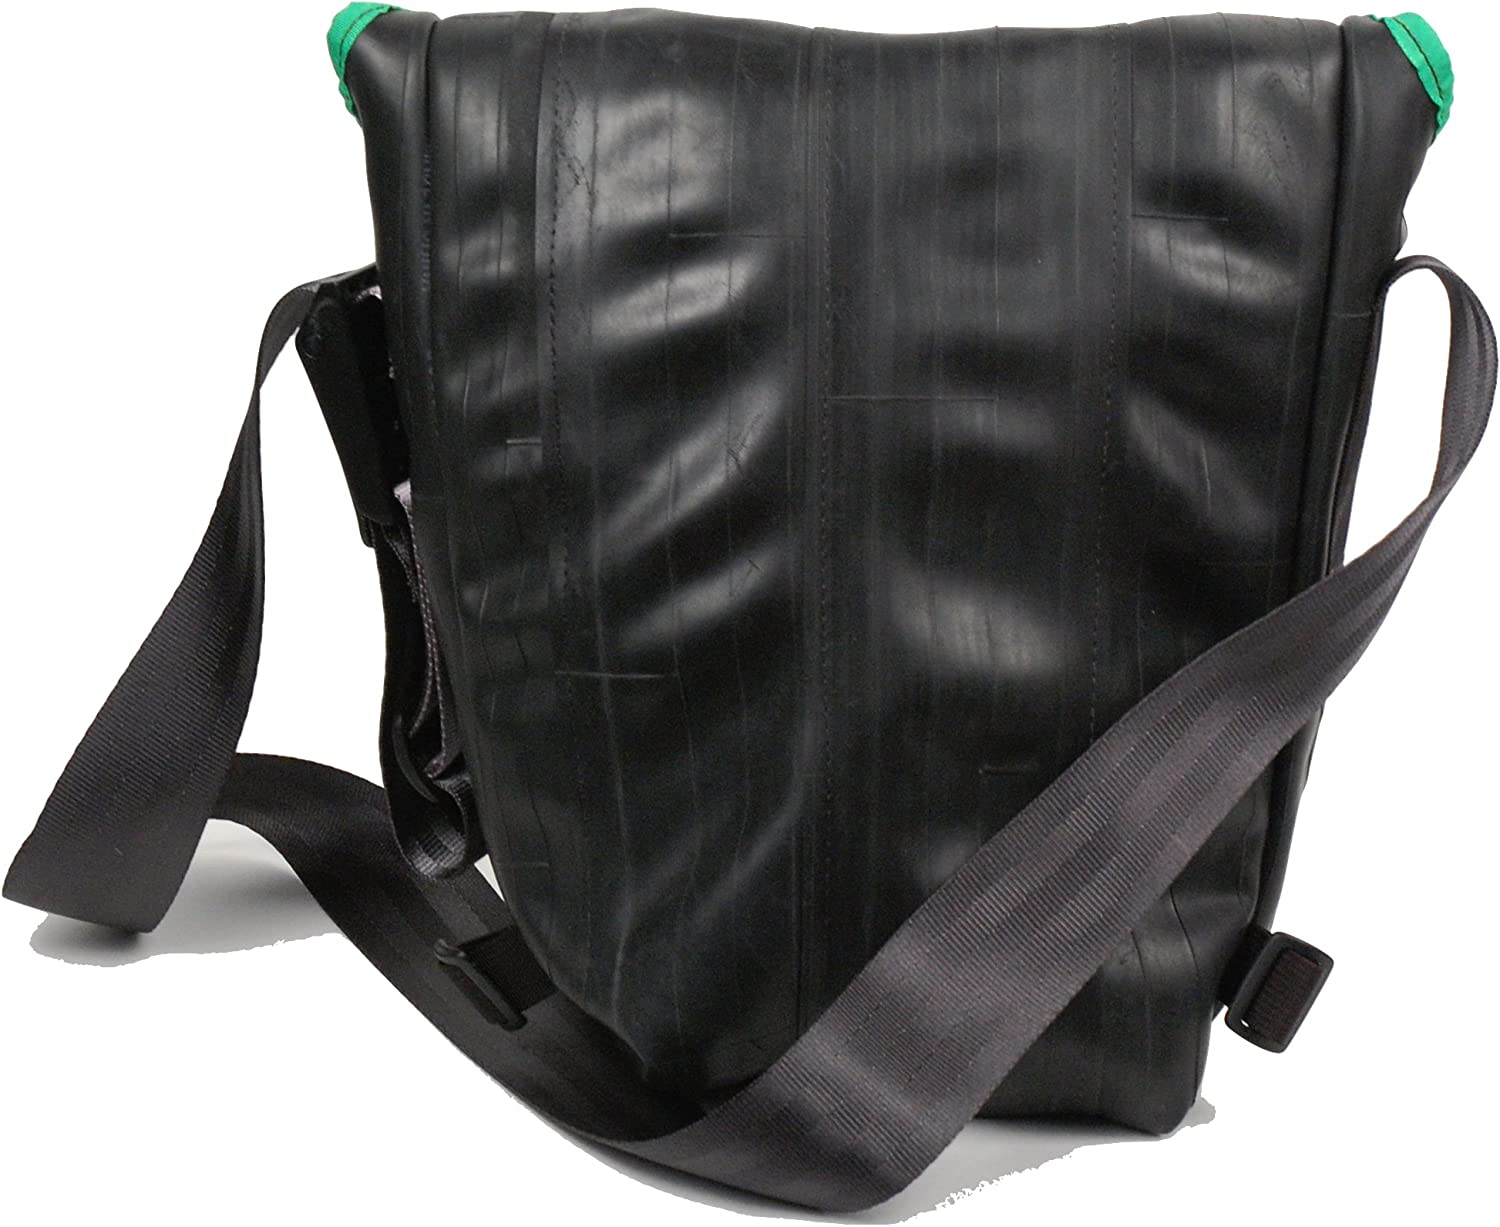 Alchemy Goods Haversack Messenger Bag, Made from Recycled Bike Tubes